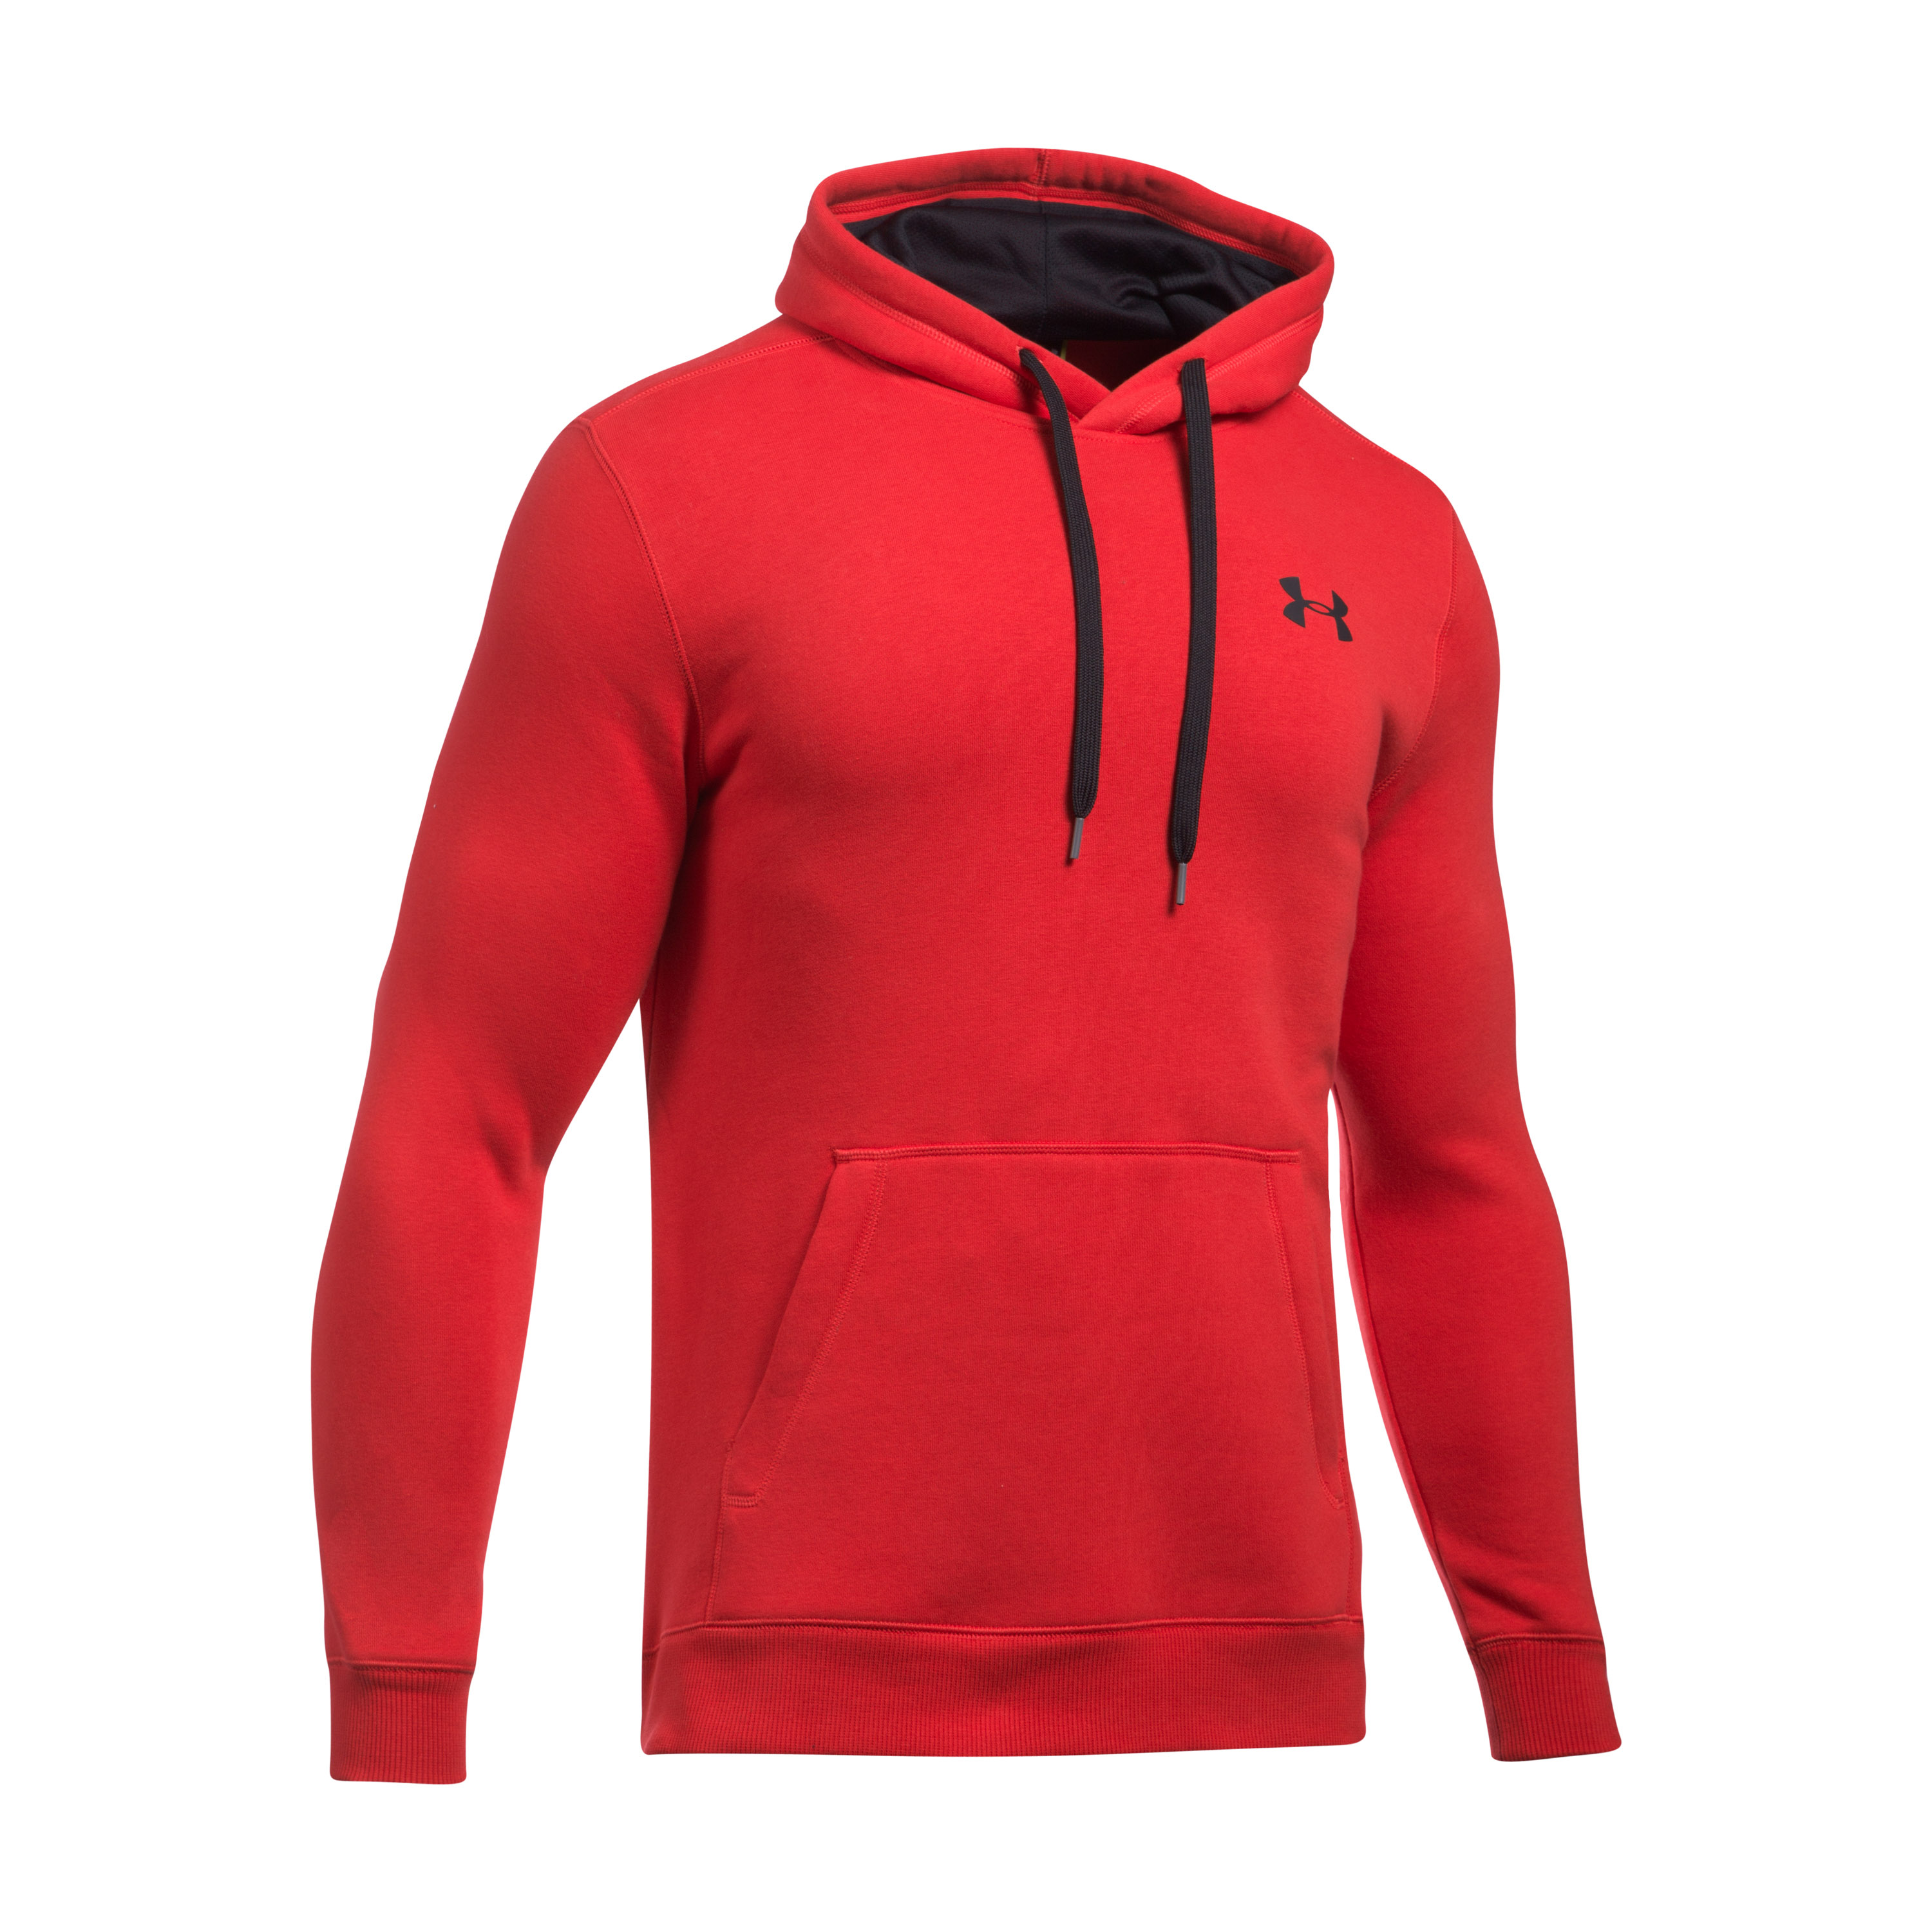 Under Armour Hoodie Rival Fitted red/black